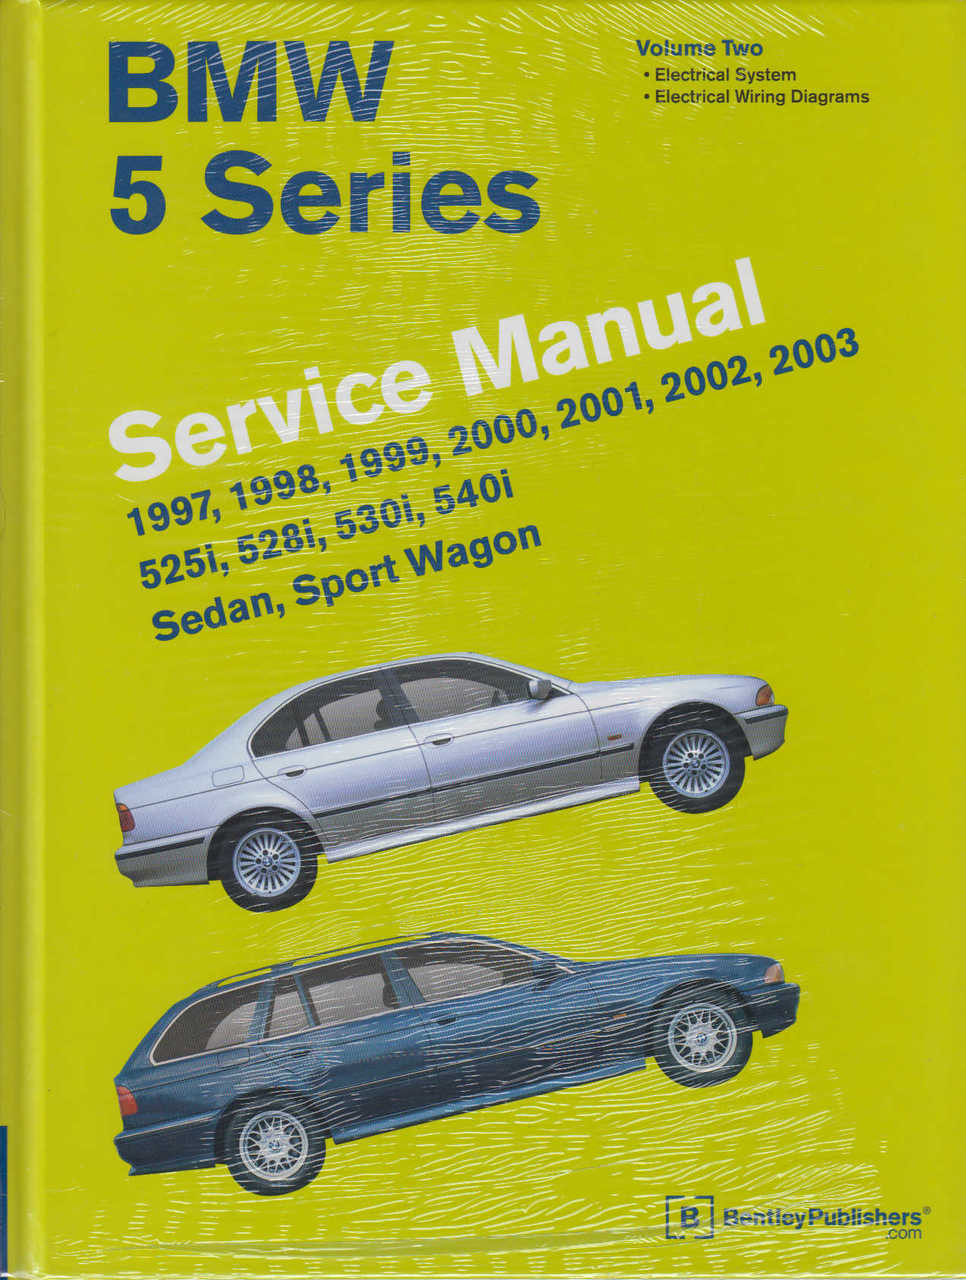 Under The Hood Of A BMW 3 Series '99 Thru '05   YouTube furthermore 1999 Bmw 328i Engine Diagram New Bmw Radiator Cooling System Water besides 1999 Bmw 528i Ac Wiring   Automotive Block Diagram • also 1999 Bmw 328i Fuse Box i • Wiring Diagrams likewise Awesome 1998 Bmw Wiring Diagrams Image   Everything You Need to Know besides  moreover  besides  furthermore 1999 528i Bmw Wiring Diagrams   Diagram Schematic further Bmw 5401 Fuse Box Diagram Fuse • Wiring Diagrams likewise Wiring Diagrams 2000 528i Bmw   Residential Electrical Symbols • in addition BMW E39 5 Series Transmission Fail Safe   1997 2003 525i  528i  530i besides 2010 Bmw 528i Wiring Diagram   WIRE Center • in addition 2003 Bmw Z4 Fuse Box Diagram   Wiring Diagram • furthermore Bmw 528i Radio Wiring Diagram   WIRE Center • besides 1999 BMW 528i Engine Diagram  BMW  Wiring Diagrams Instructions. on 1999 528i bmw wiring diagrams